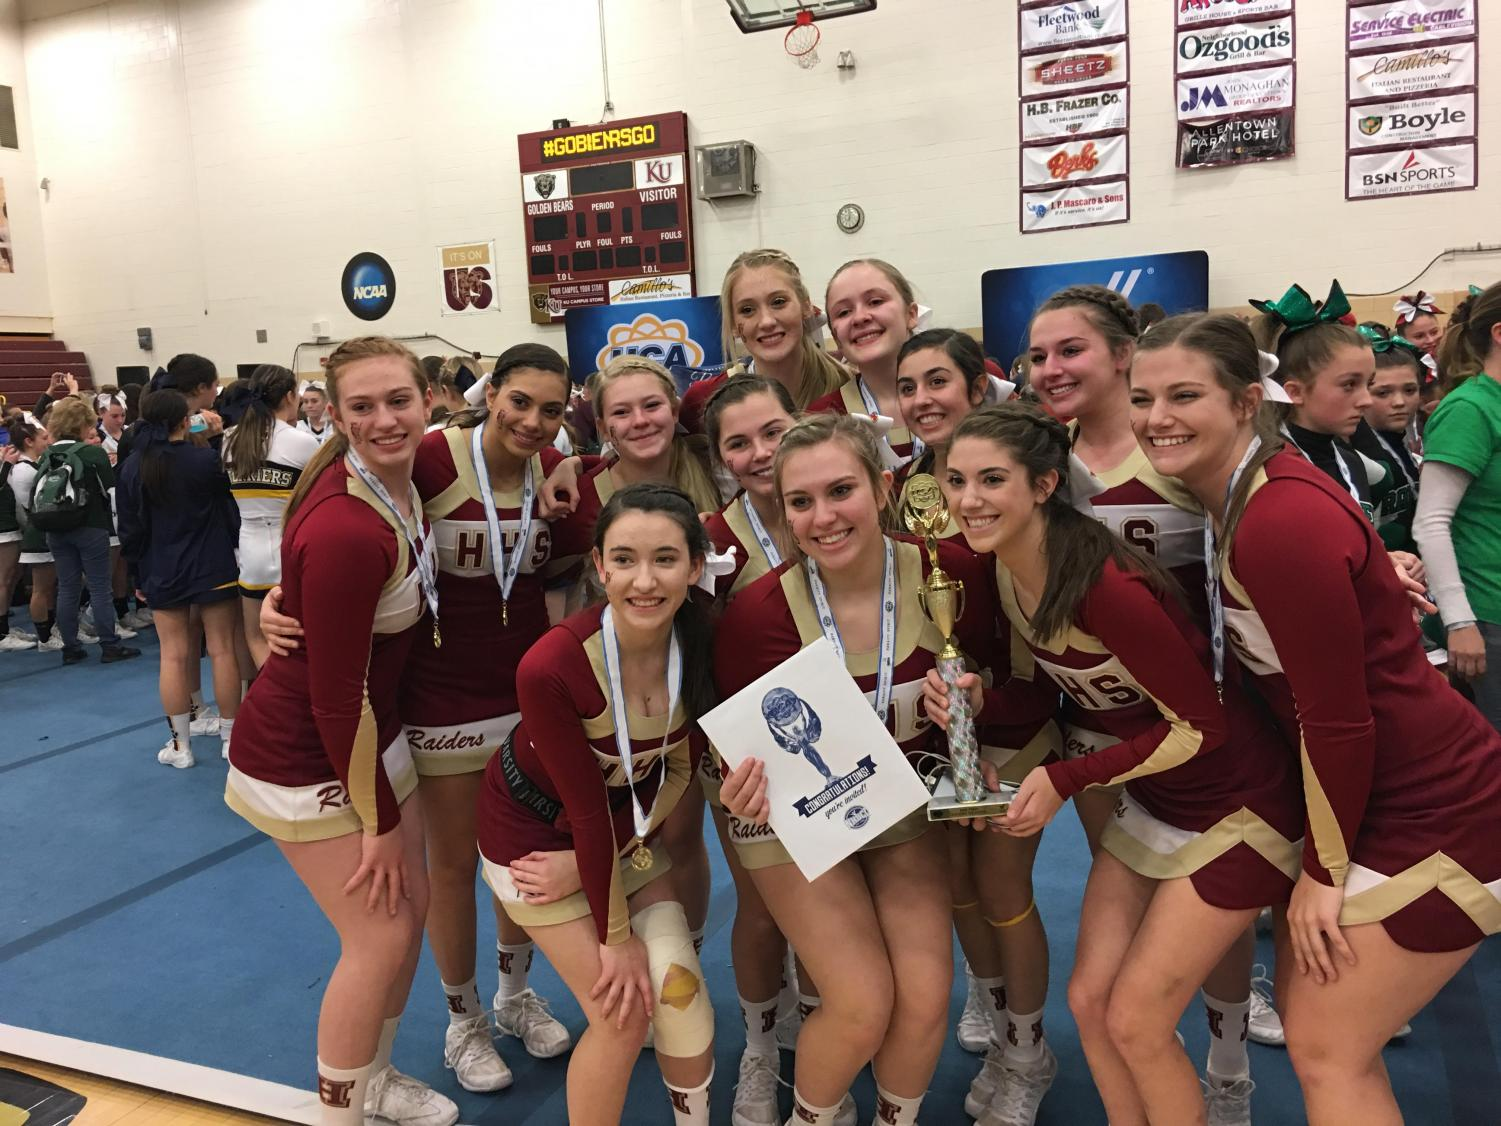 The competition cheer team earned a ticket to the Nationals at Disney.